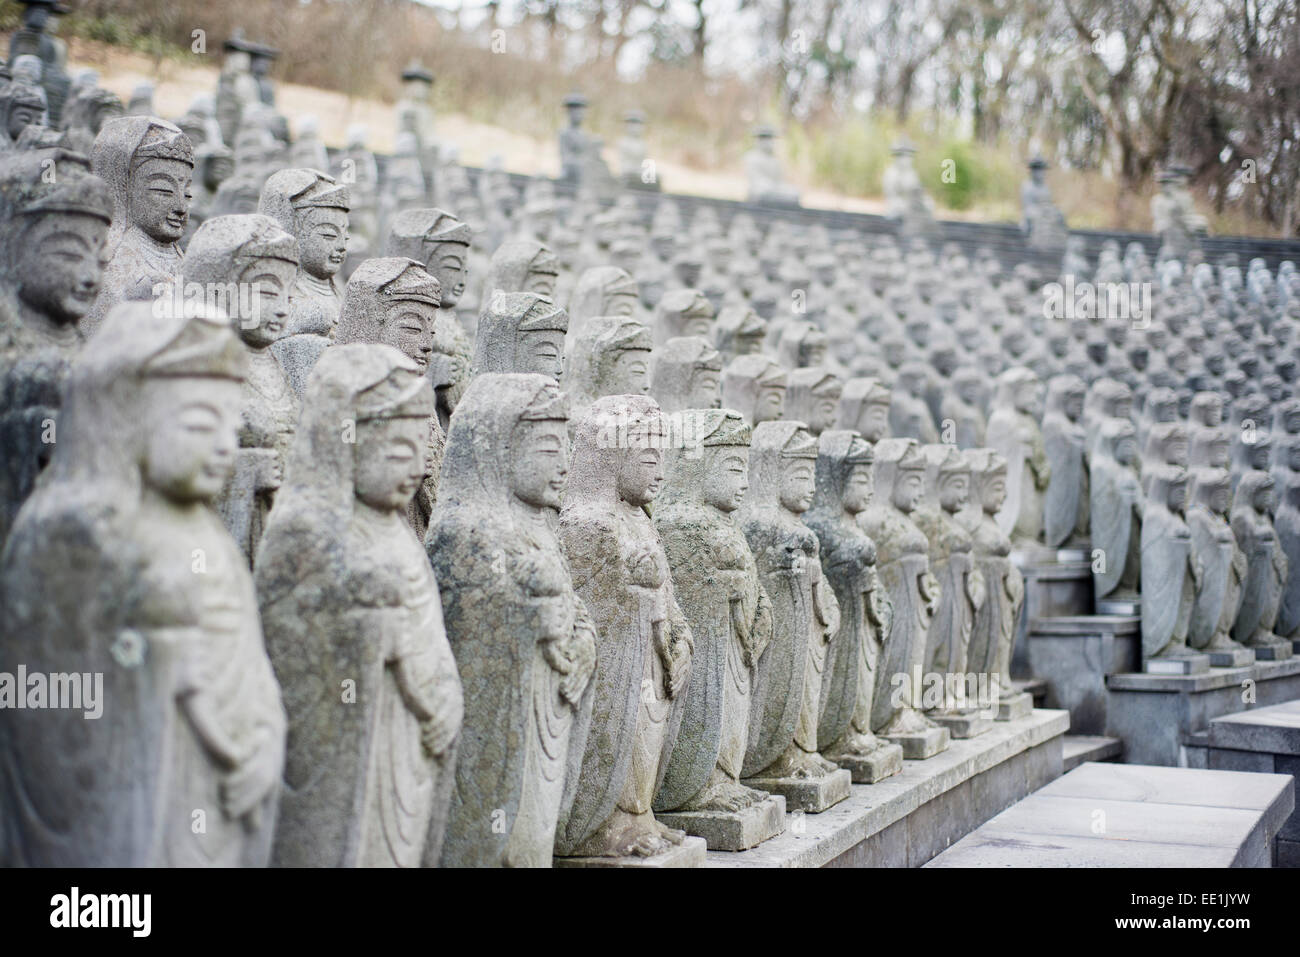 Statues, Gwaneumsa Buddhist Temple, Jeju Island, South Korea, Asia - Stock Image